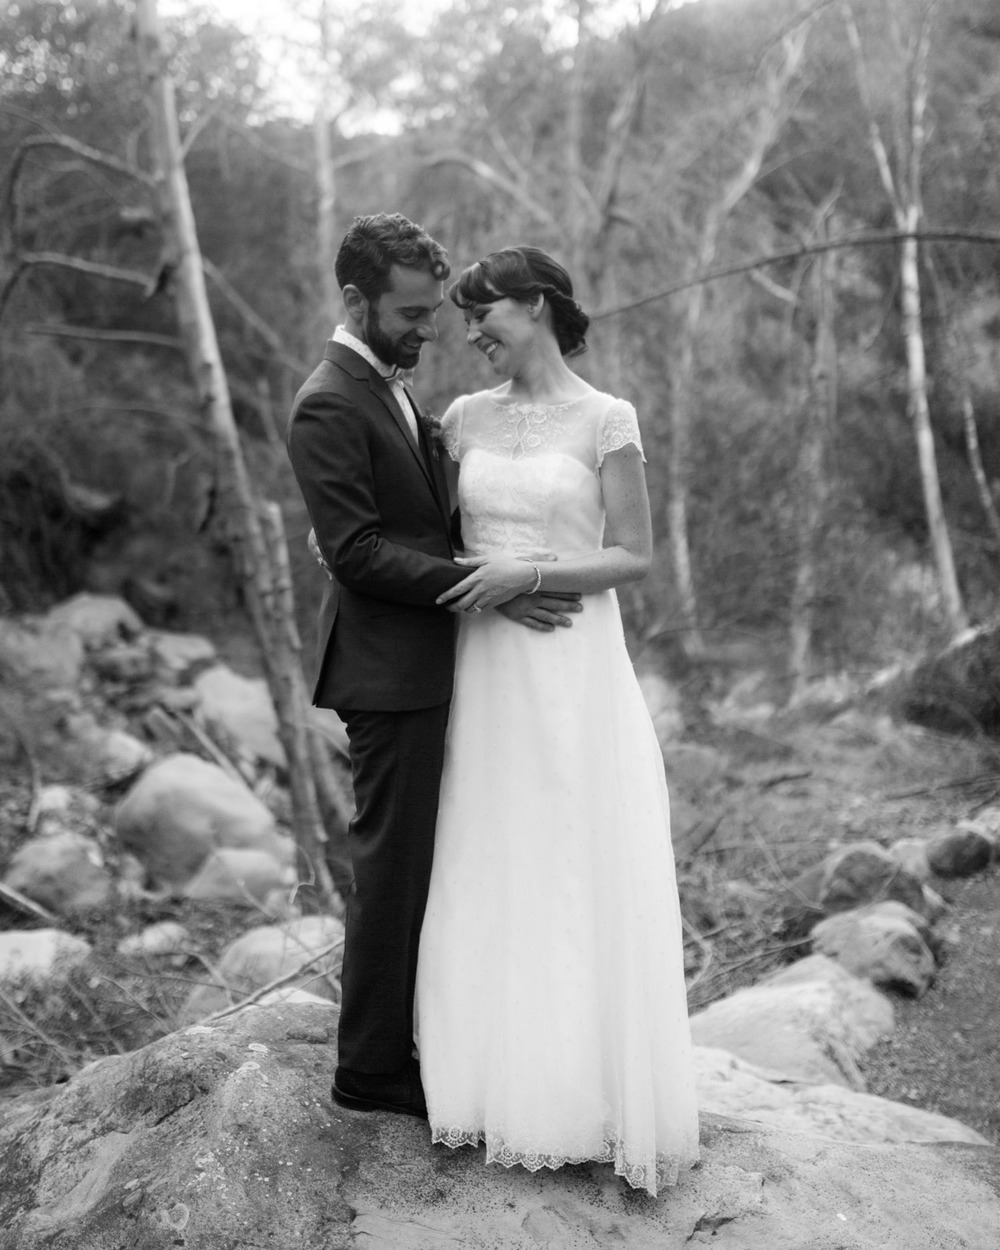 Ojai Wedding Photographer, Calliote Canyon Wedding - The Gathering Season x weareleoandkat 067.JPG